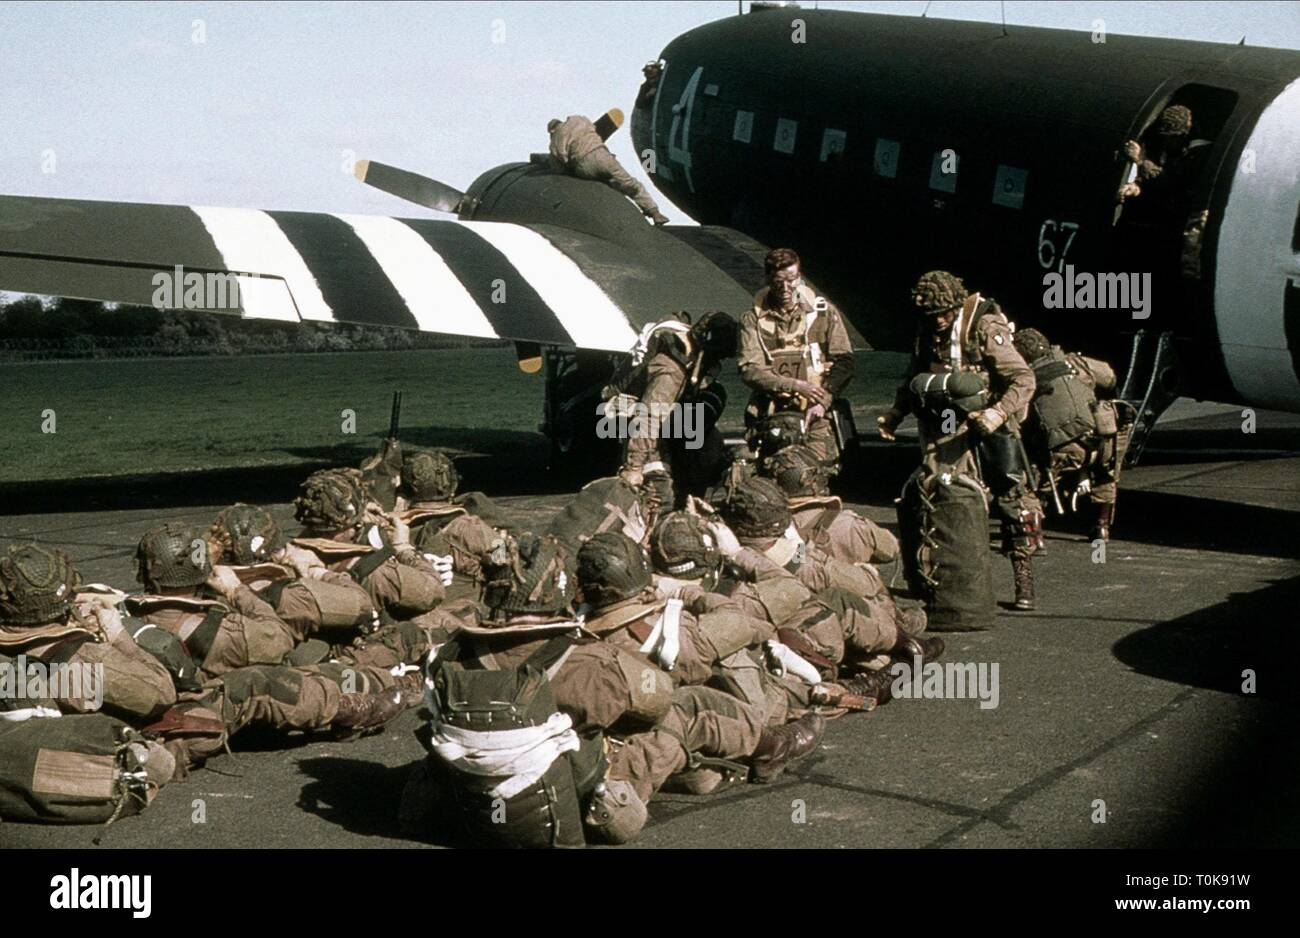 DAMIAN LEWIS, BAND OF BROTHERS, 2001 - Stock Image